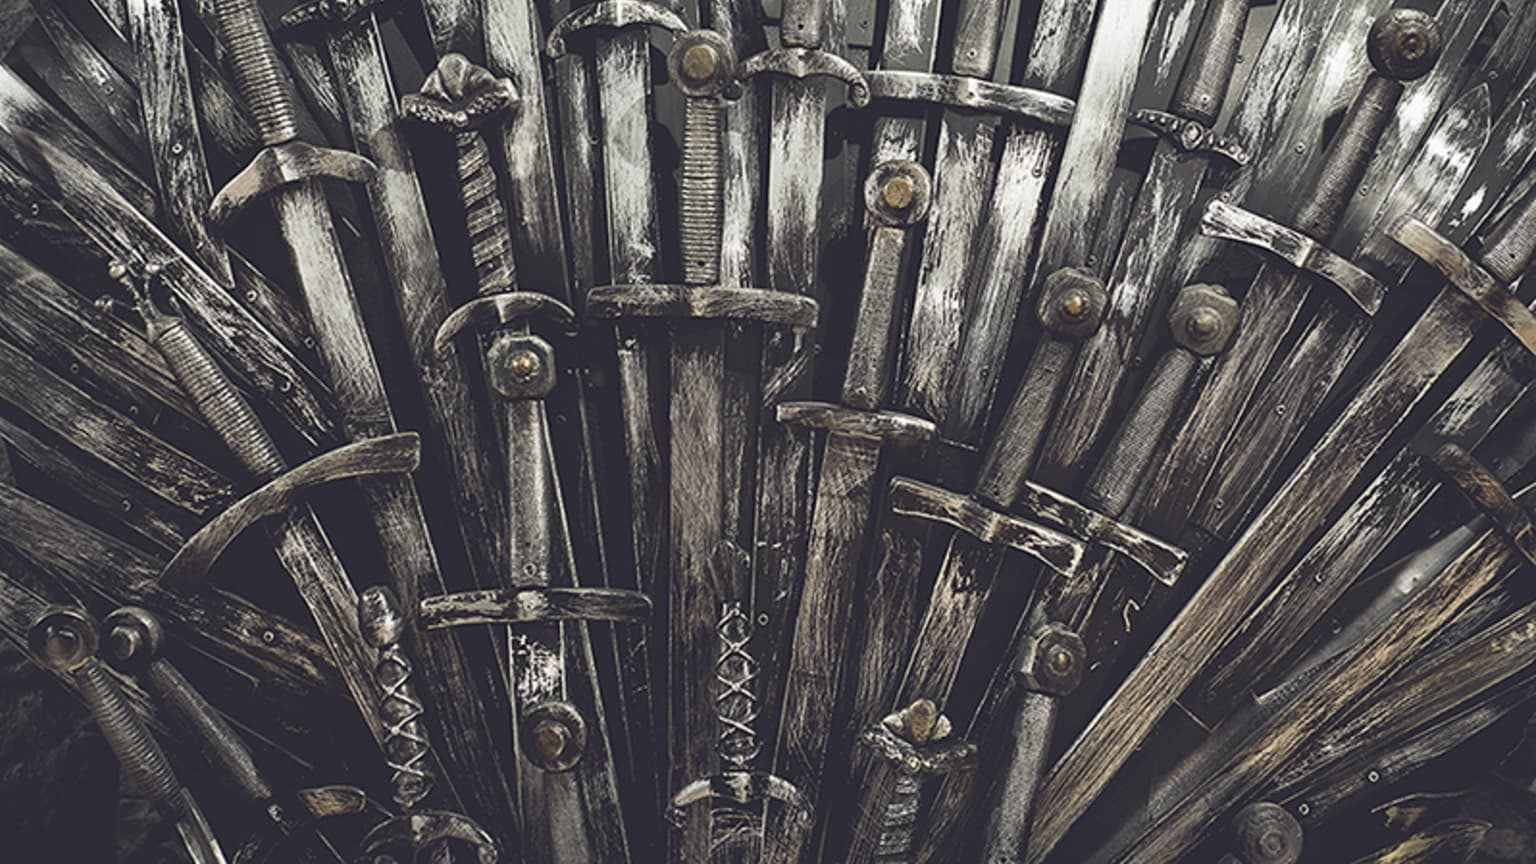 Swords from the throne in the series game of thrones